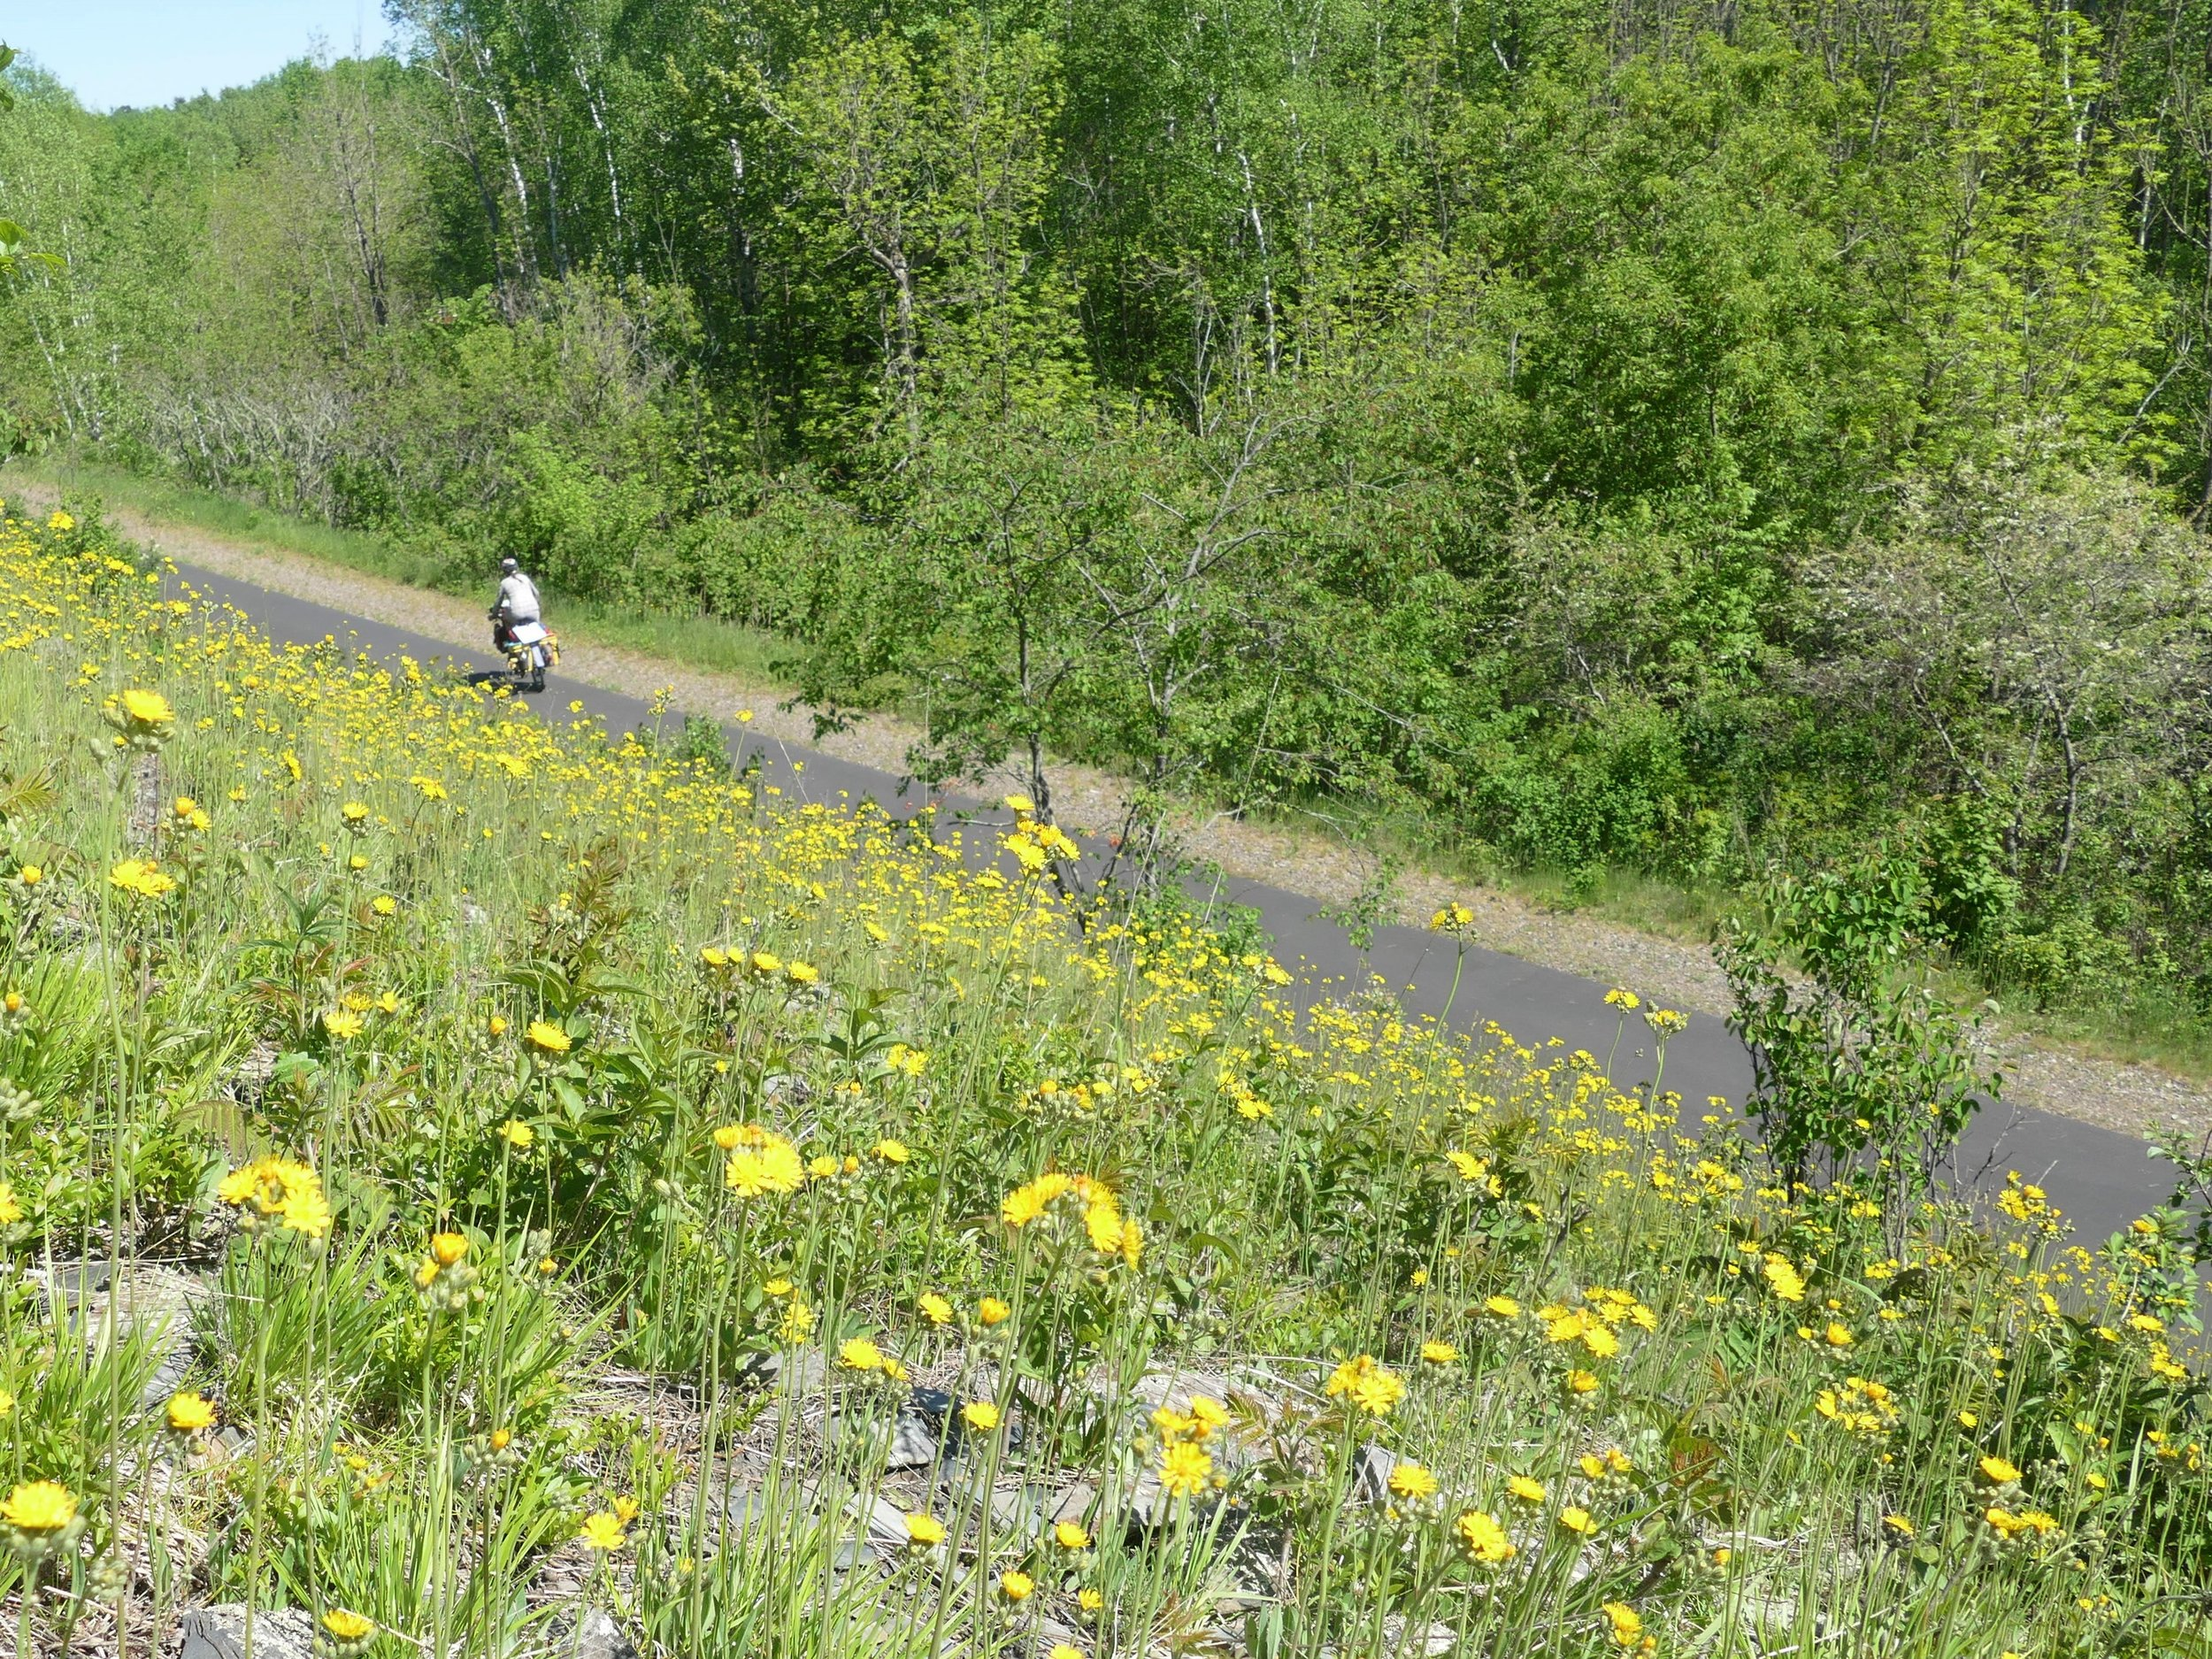 The prairies, boreal forests, and hardwood forests collide, creating an interesting bike ride full of wildlife.